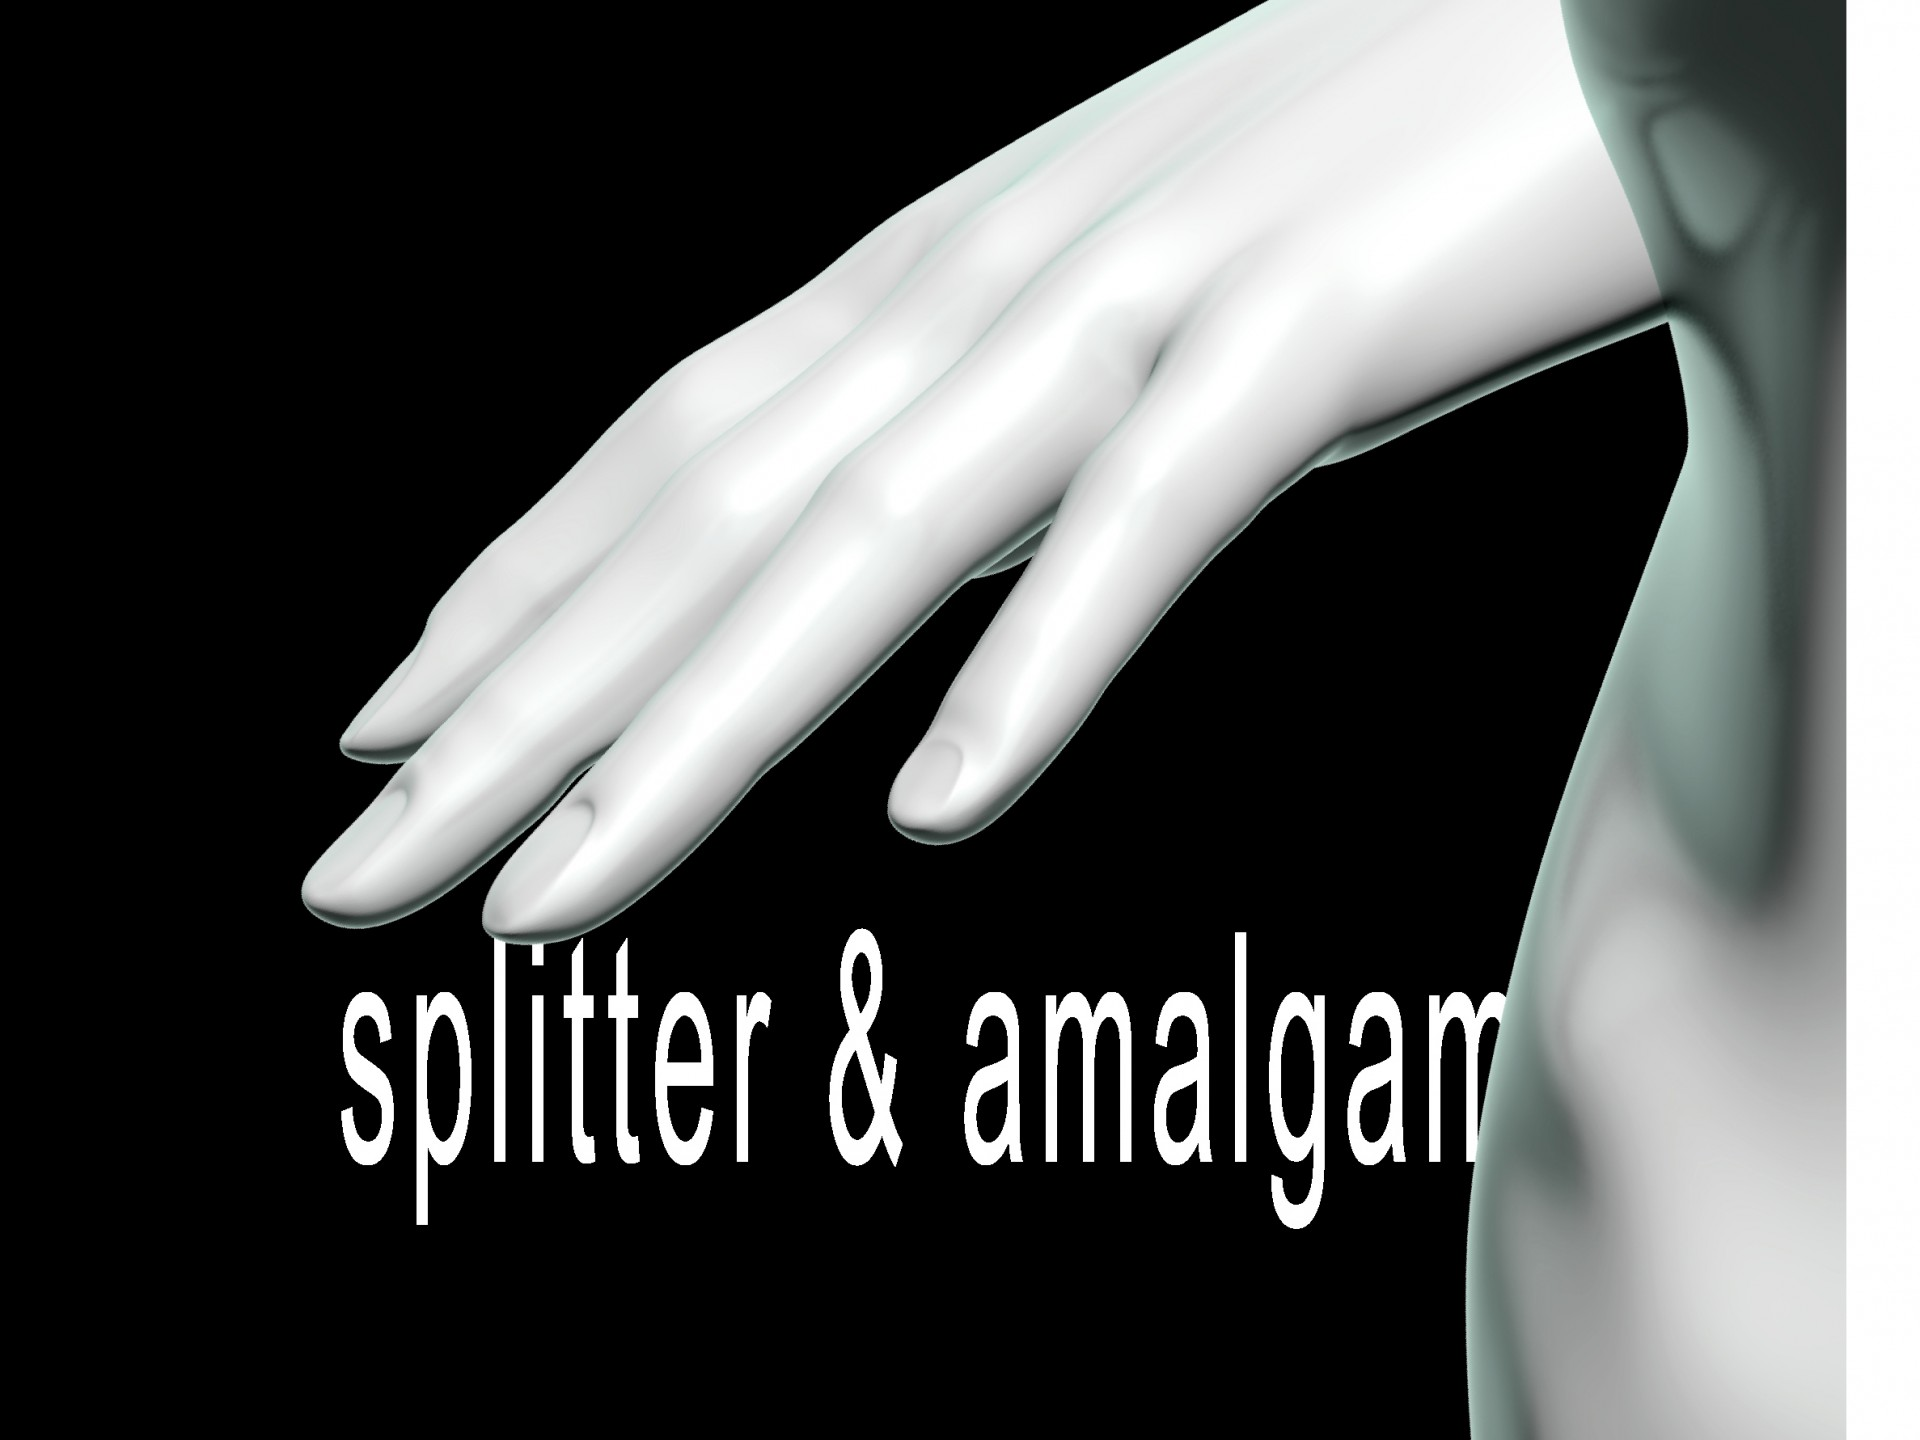 die digitale splitter & amalgam – die performances